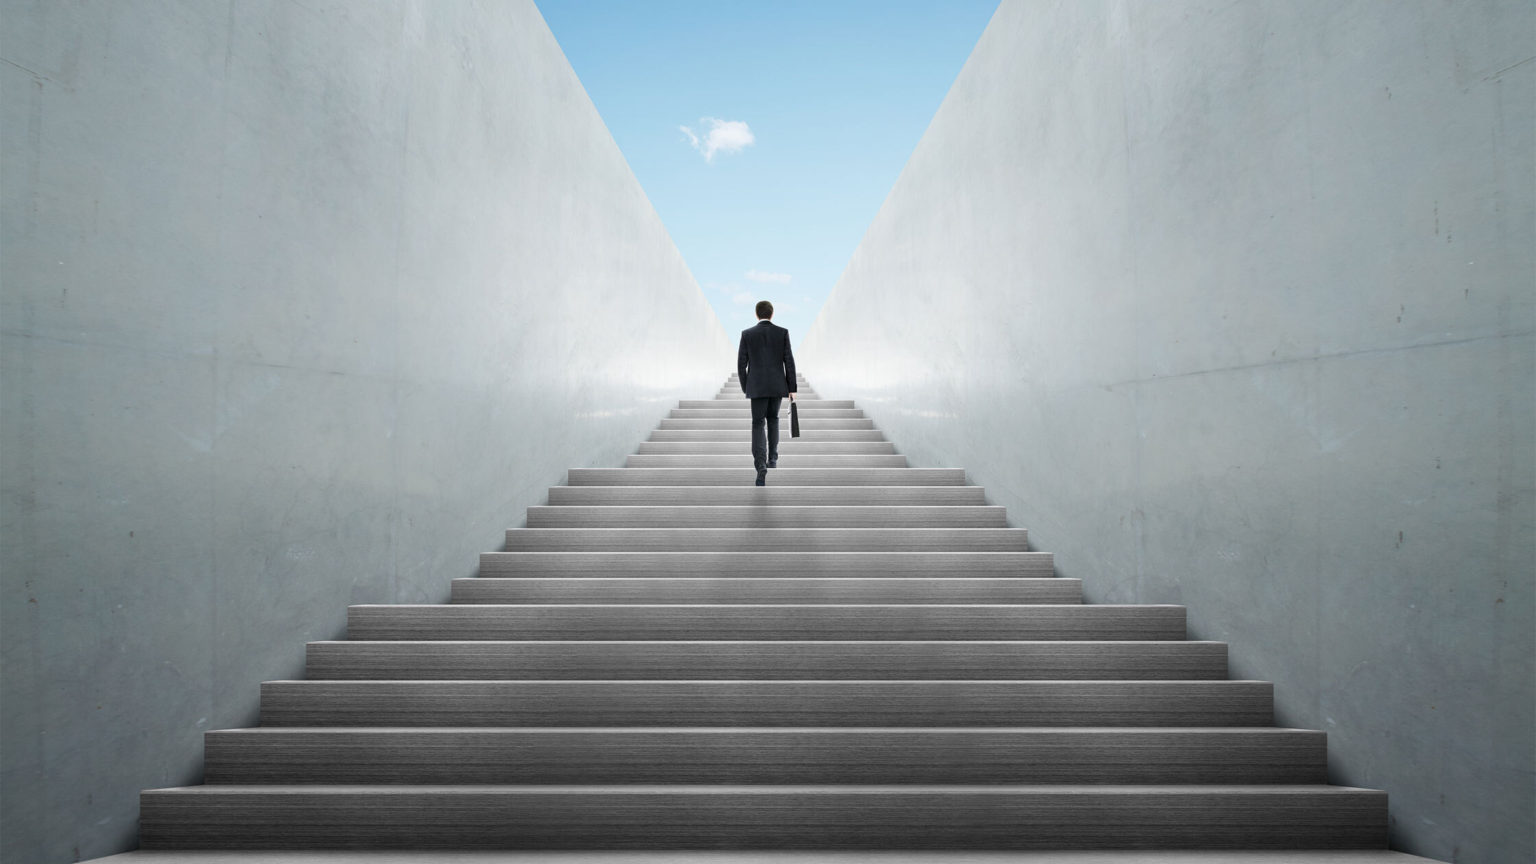 one person walking on stairs